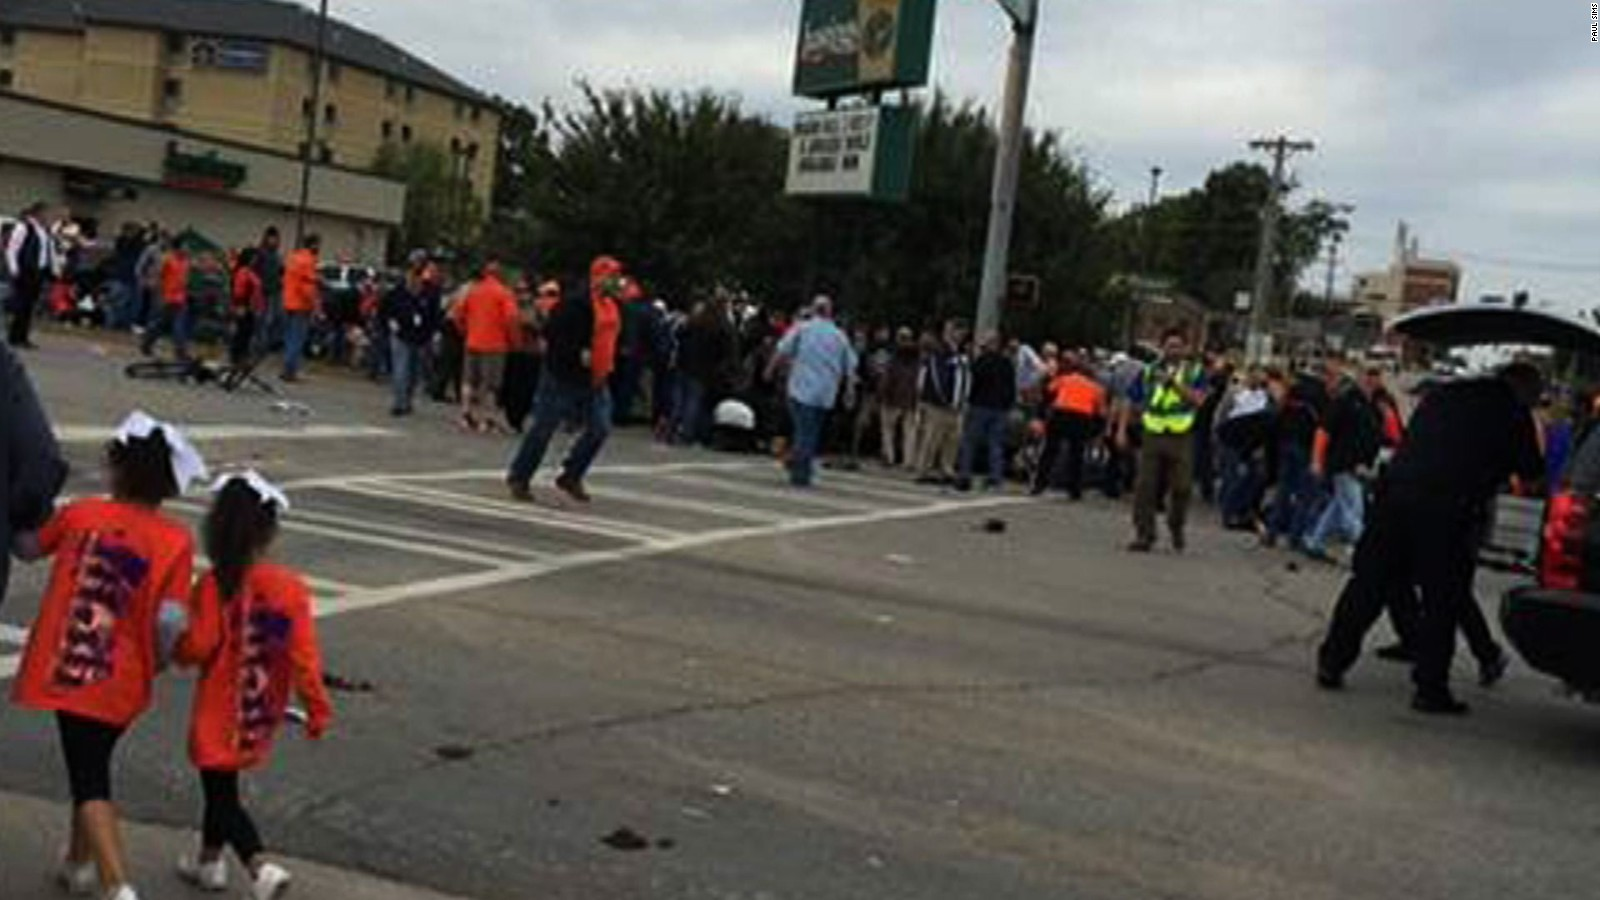 Video shows moment of Oklahoma State parade crash - CNN Video